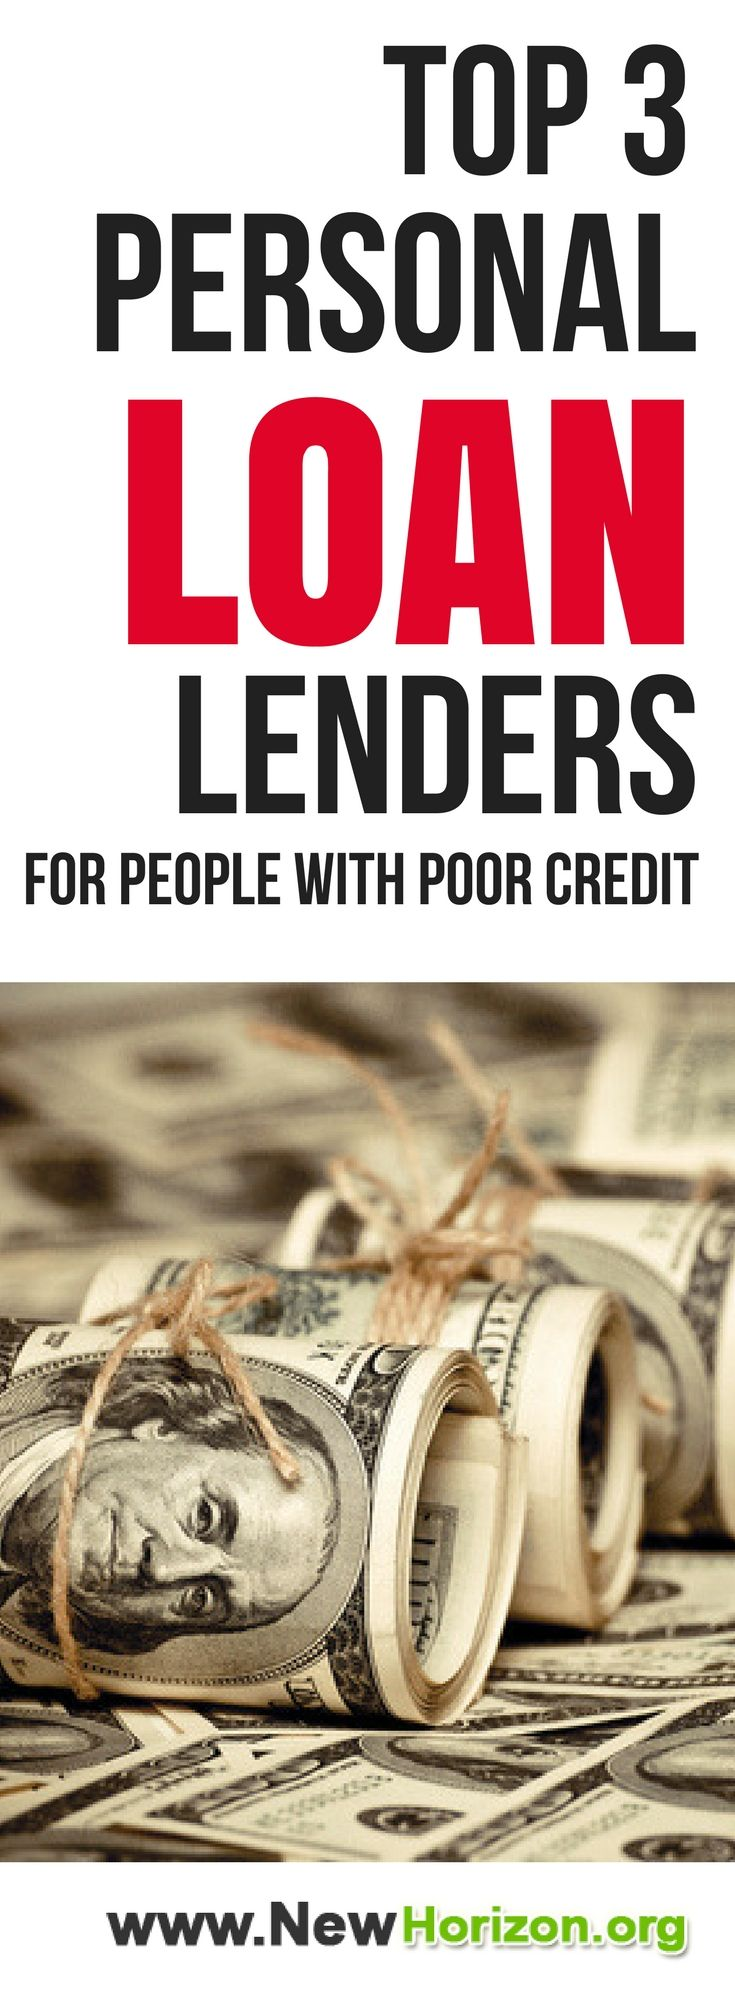 Need money but got a problem with your credit score? Here are top 3 personal loan lenders that can HELP YOU with your financial needs even with your poor credit history.